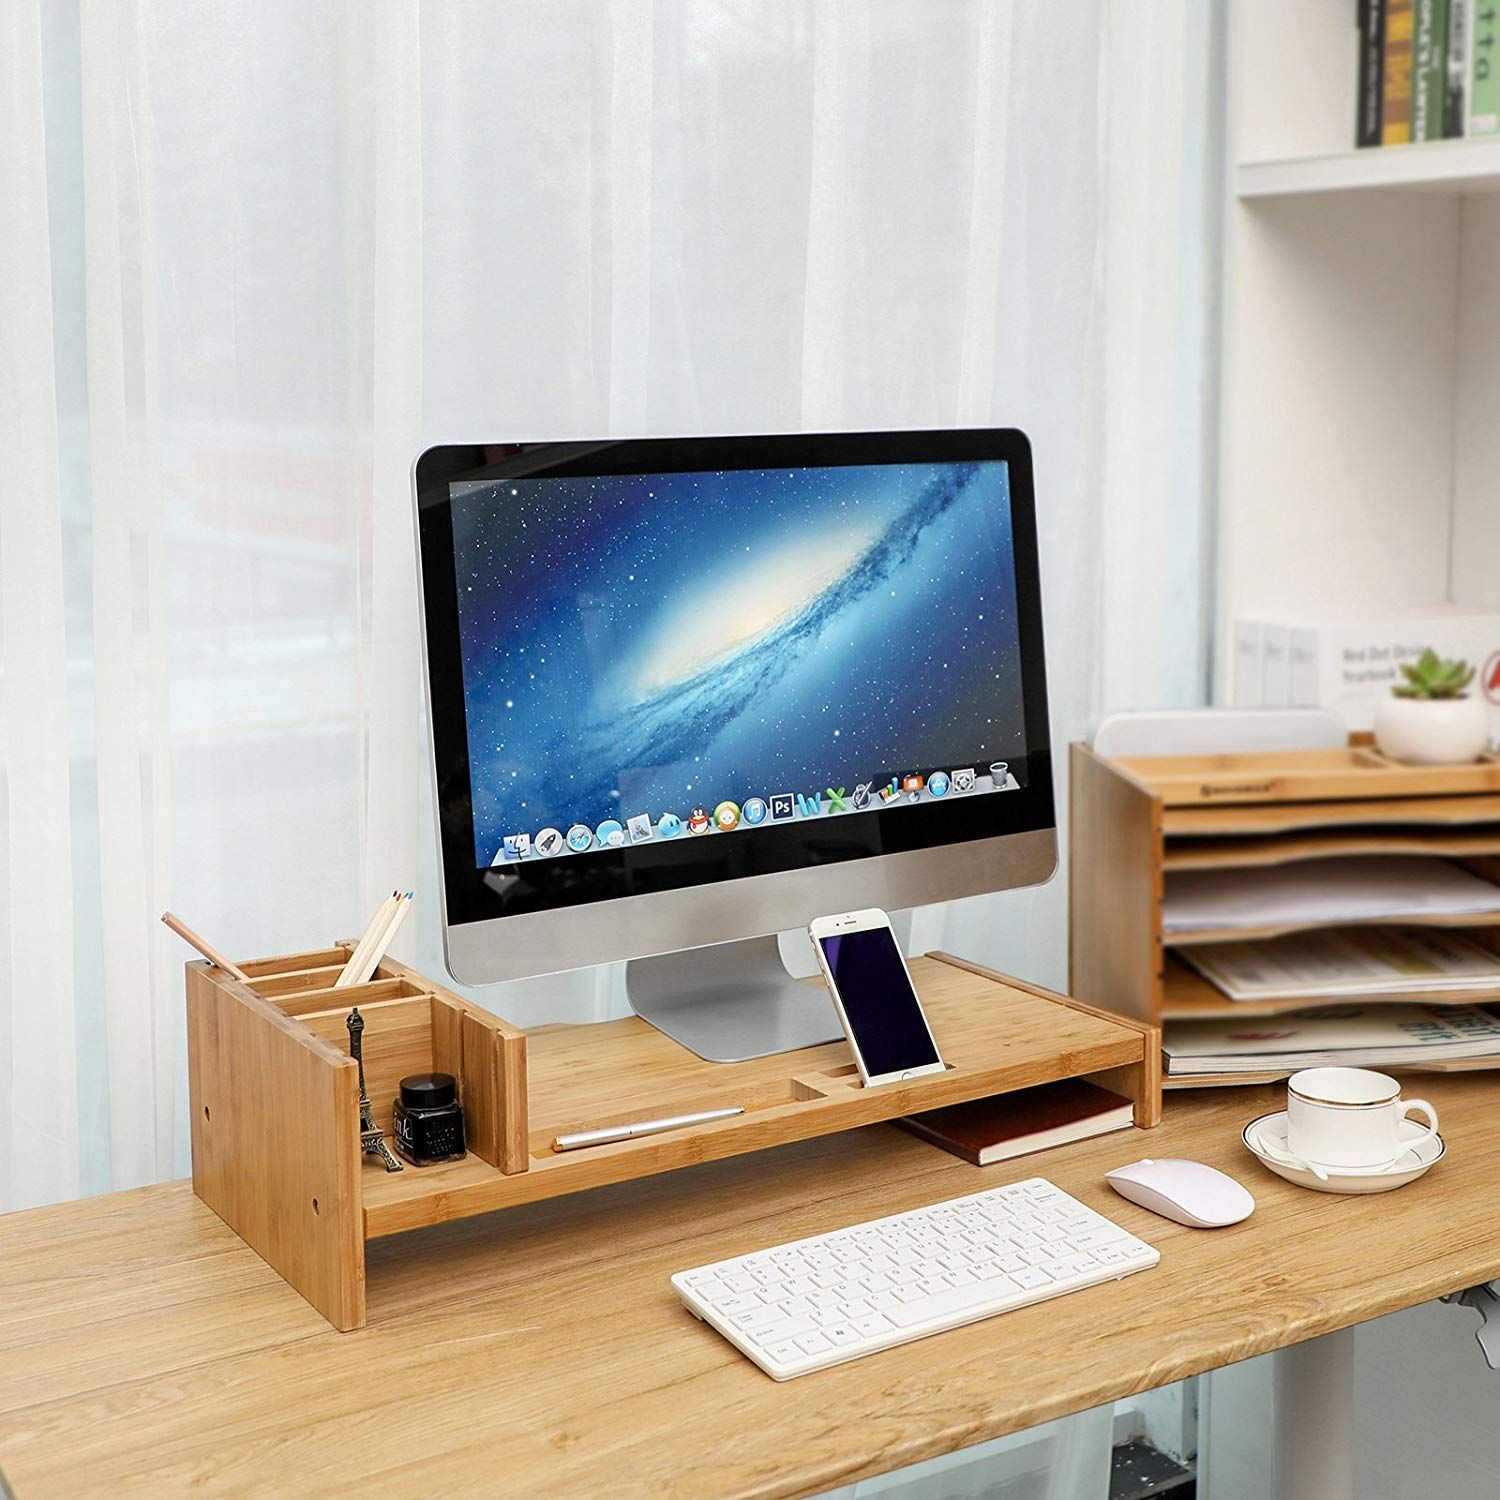 Amazon Com Songmics Bamboo Monitor Stand Riser With Adjustable Storage Organizer Laptop Stand Desk Organizer Desk Organization Cubicle Makeover Monitor Stand